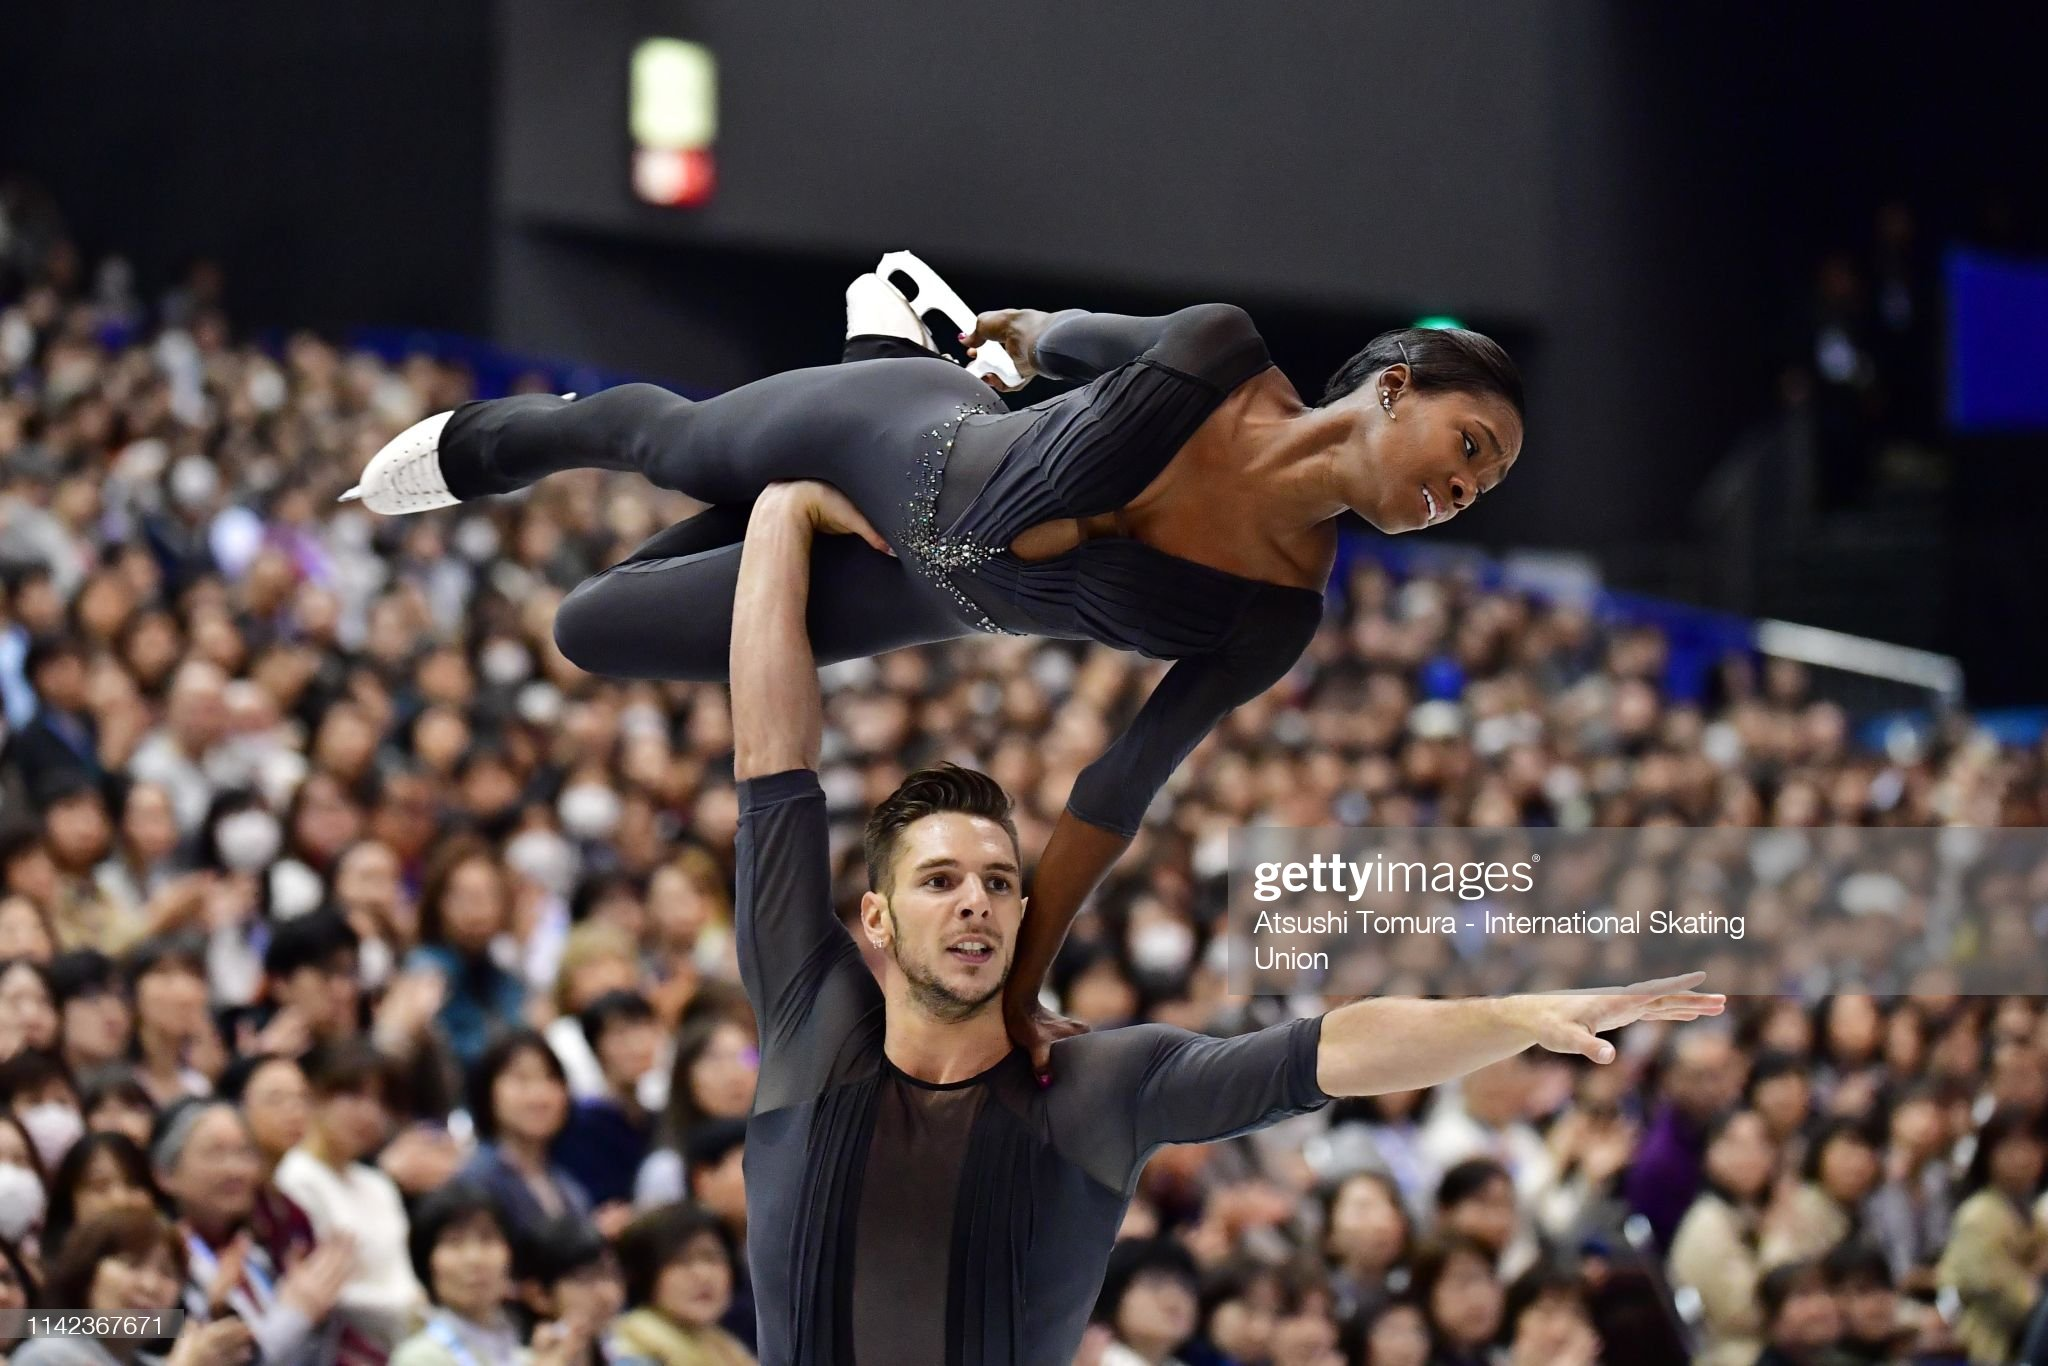 Франция земная - Страница 13 Vanessajames-and-morgancipres-of-france-compete-in-the-pair-free-on-picture-id1142367671?s=2048x2048